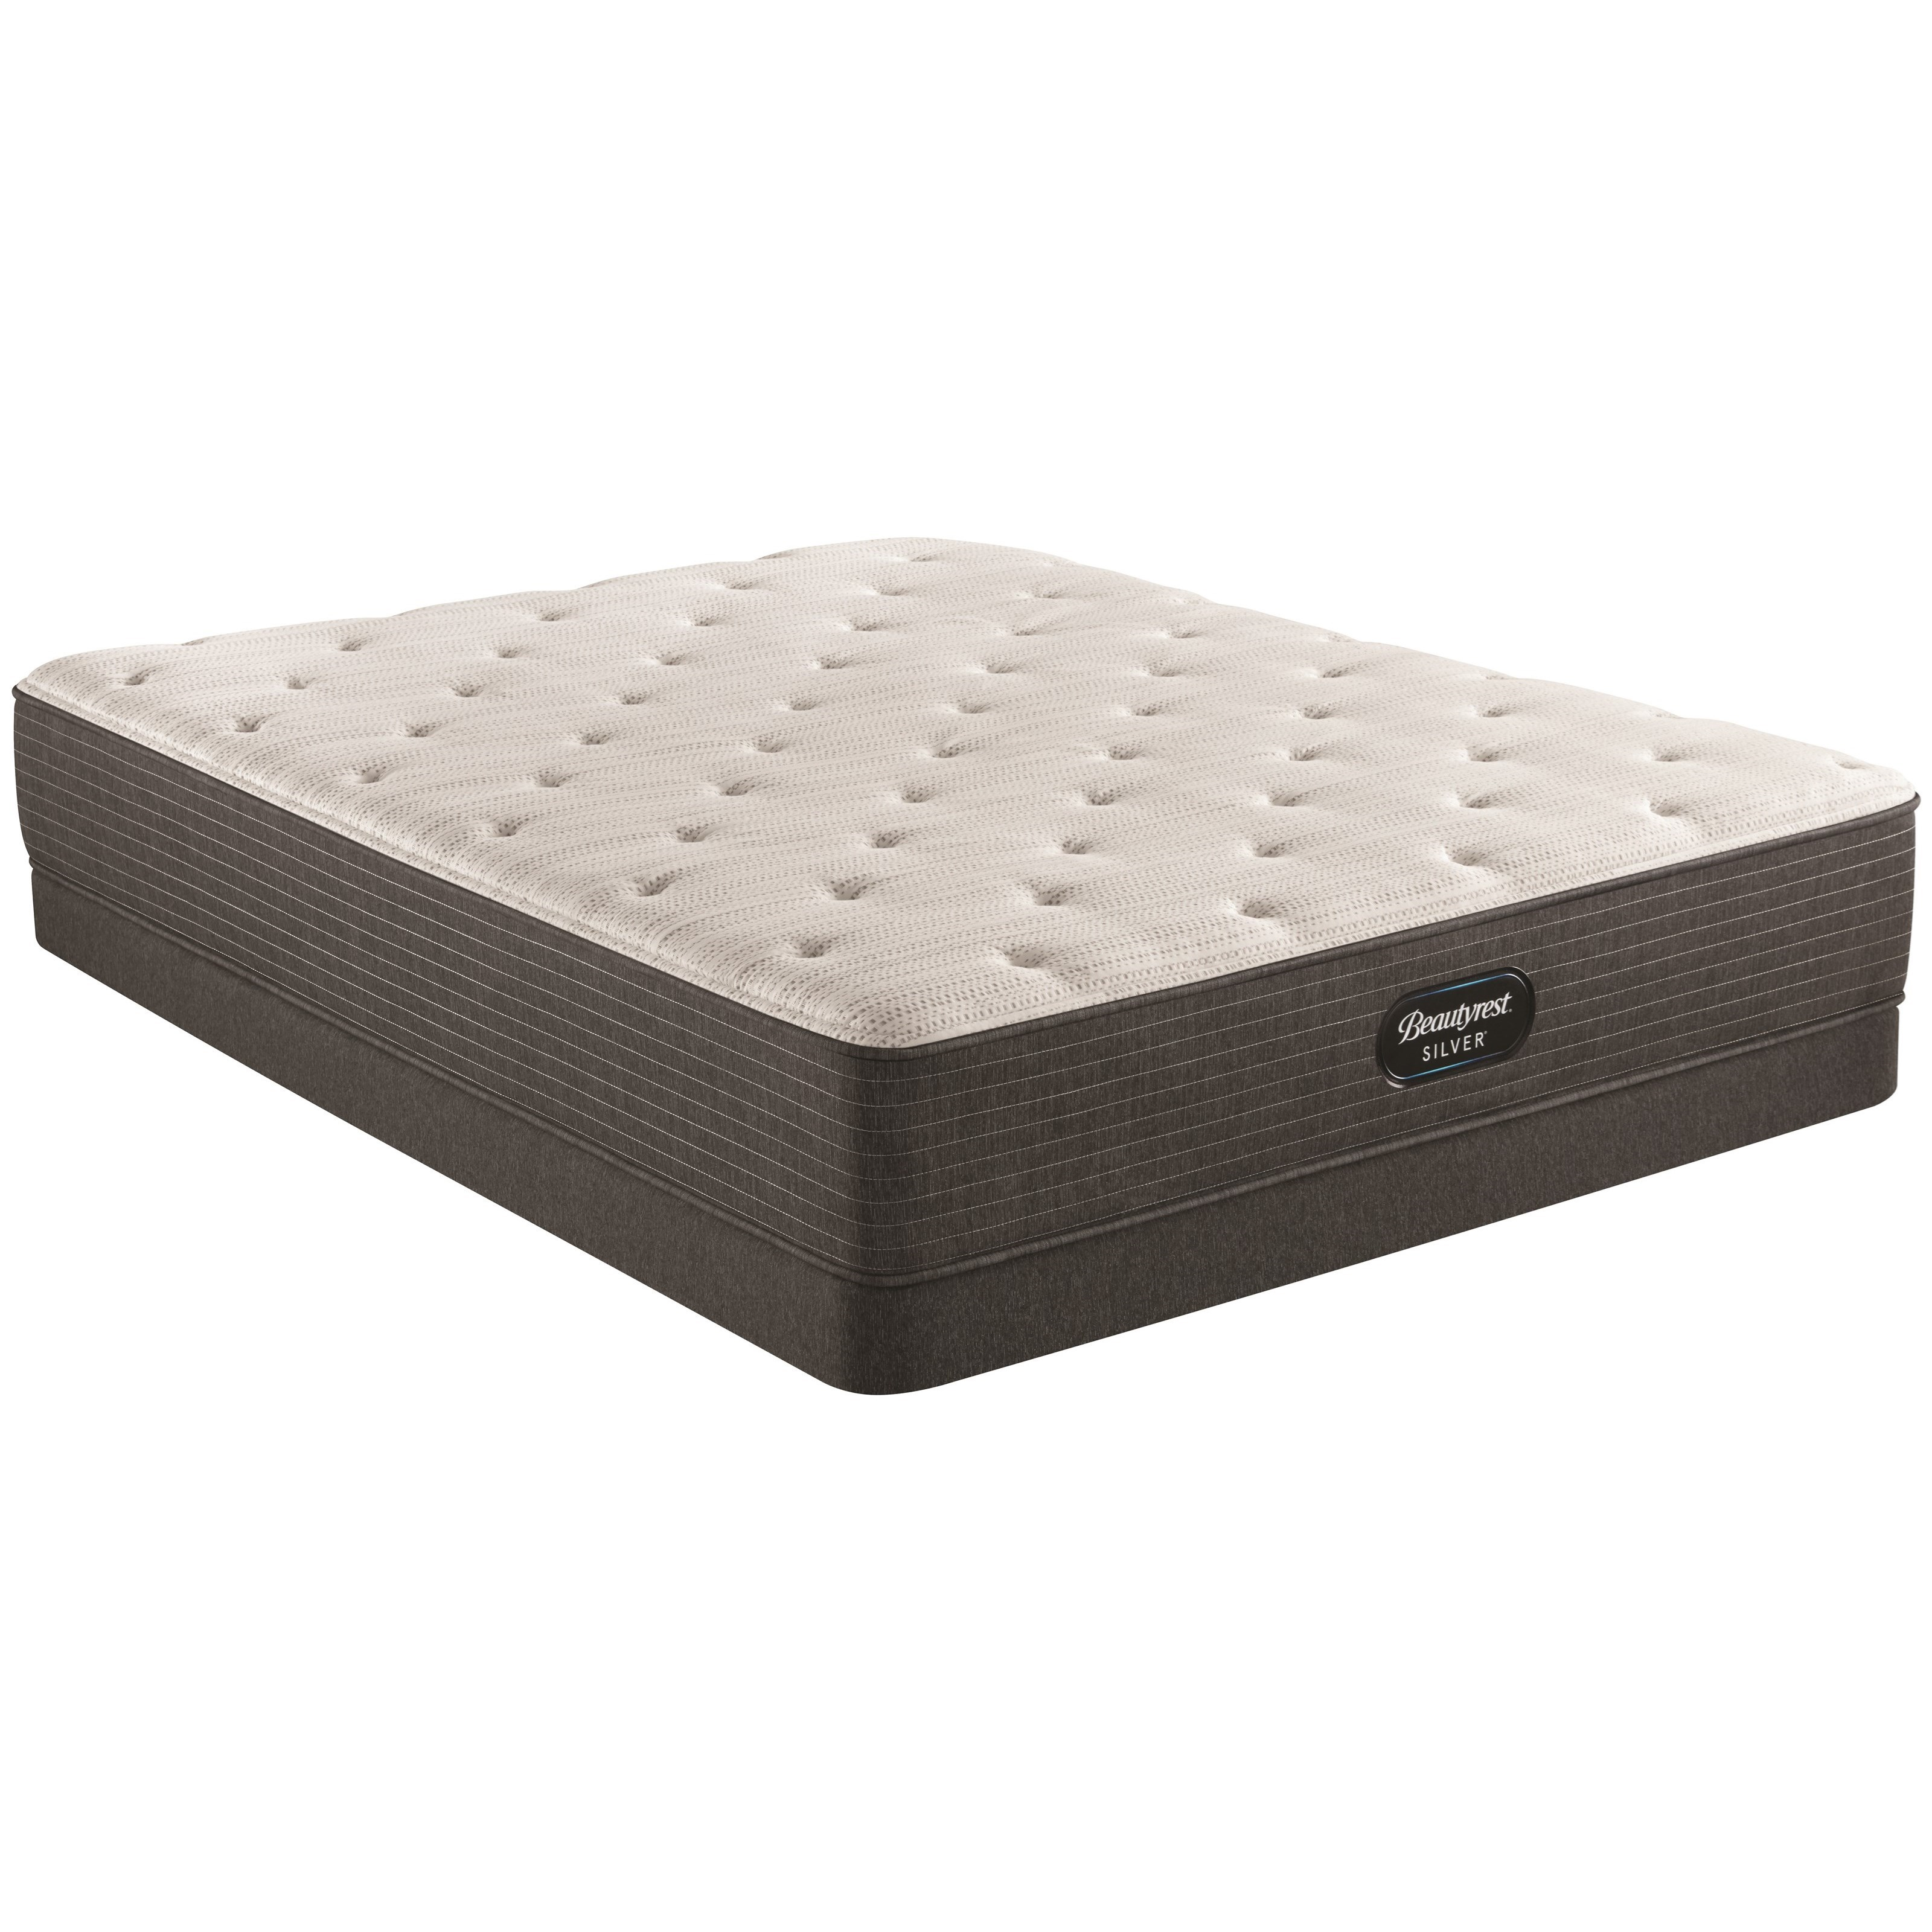 "BRS900 Plush Cal King 12"" Pocketed Coil Low Pro Set by Beautyrest at SlumberWorld"